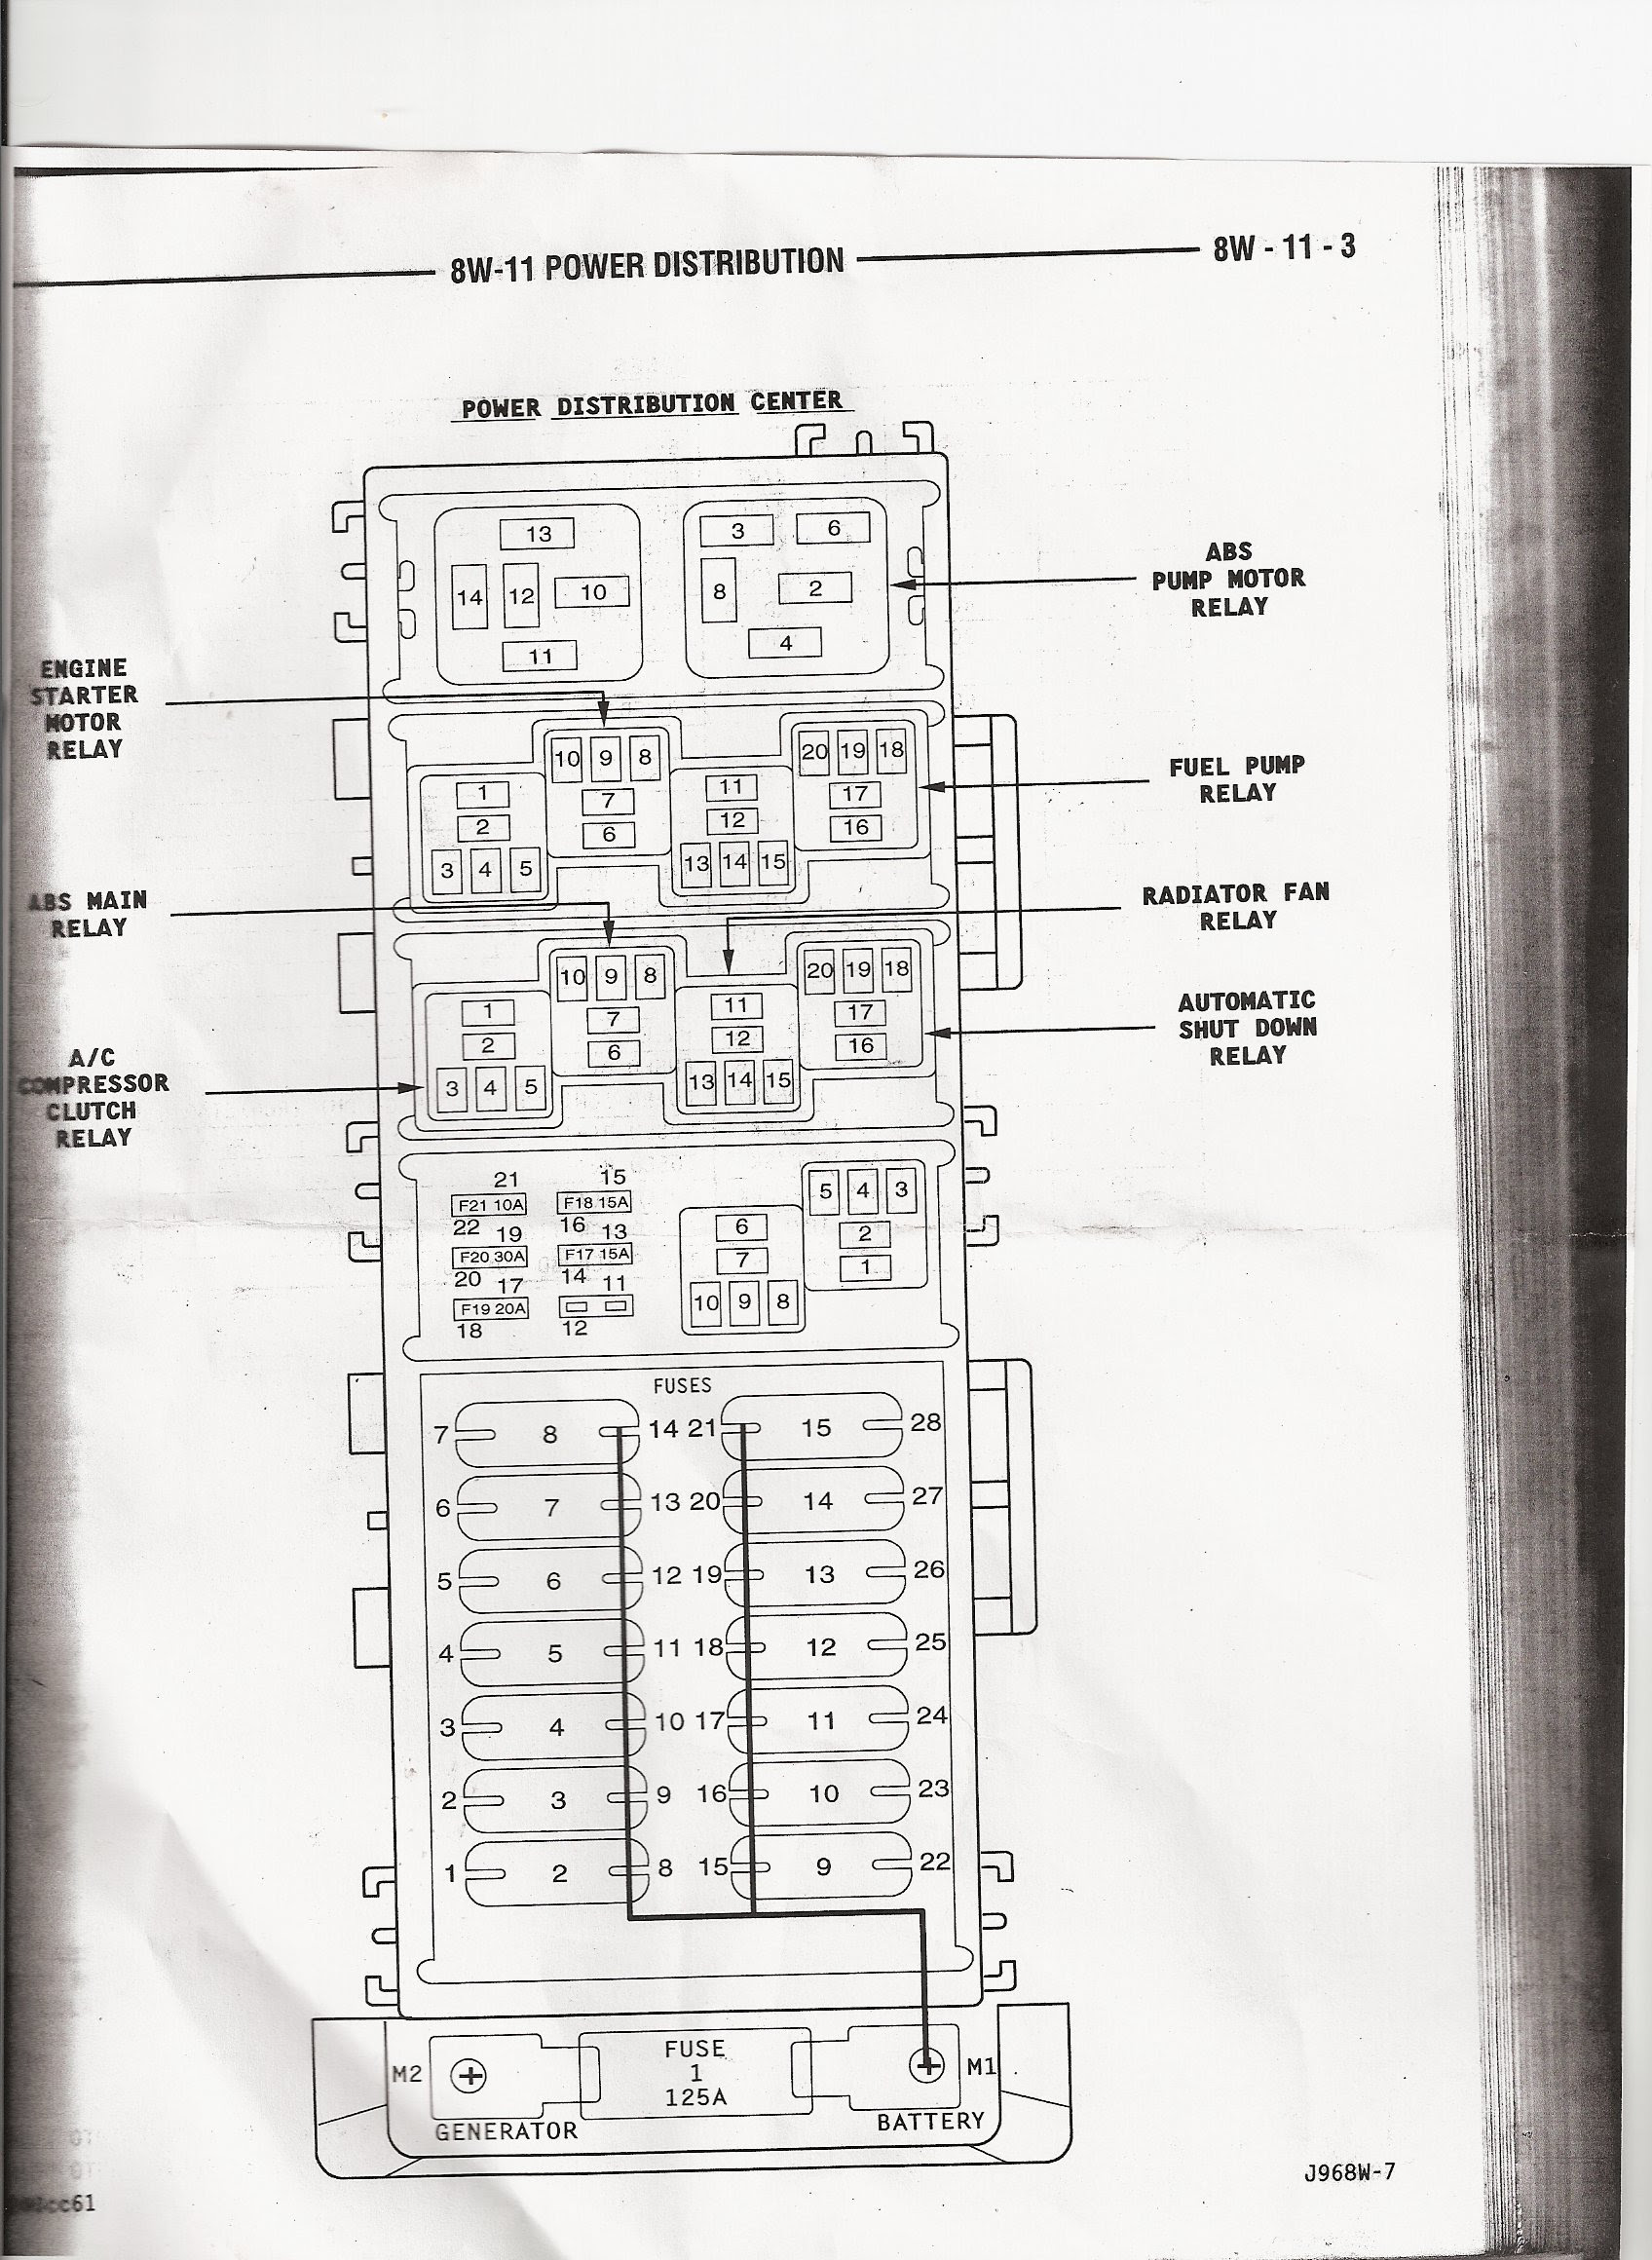 1996 jeep grand cherokee interior fuse box diagram 34 96 jeep cherokee fuse box diagram wiring diagram list  34 96 jeep cherokee fuse box diagram